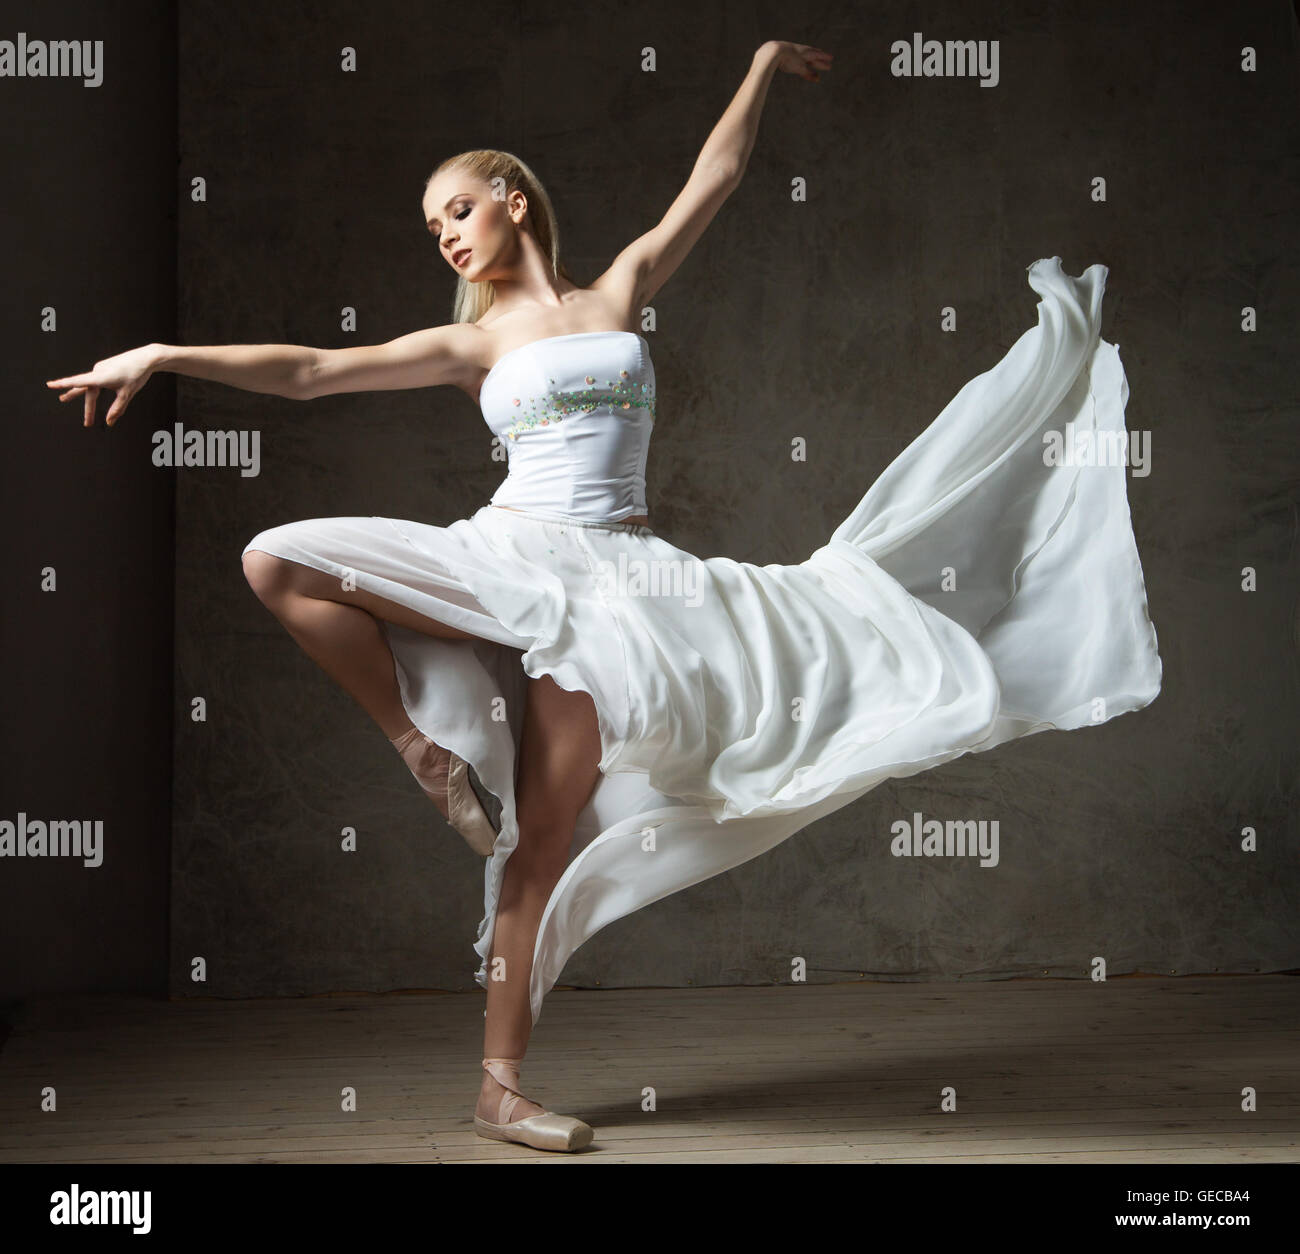 Beautiful Ballet Dancer In White Costume With Waving Skirt Dancing Stock Photo Alamy